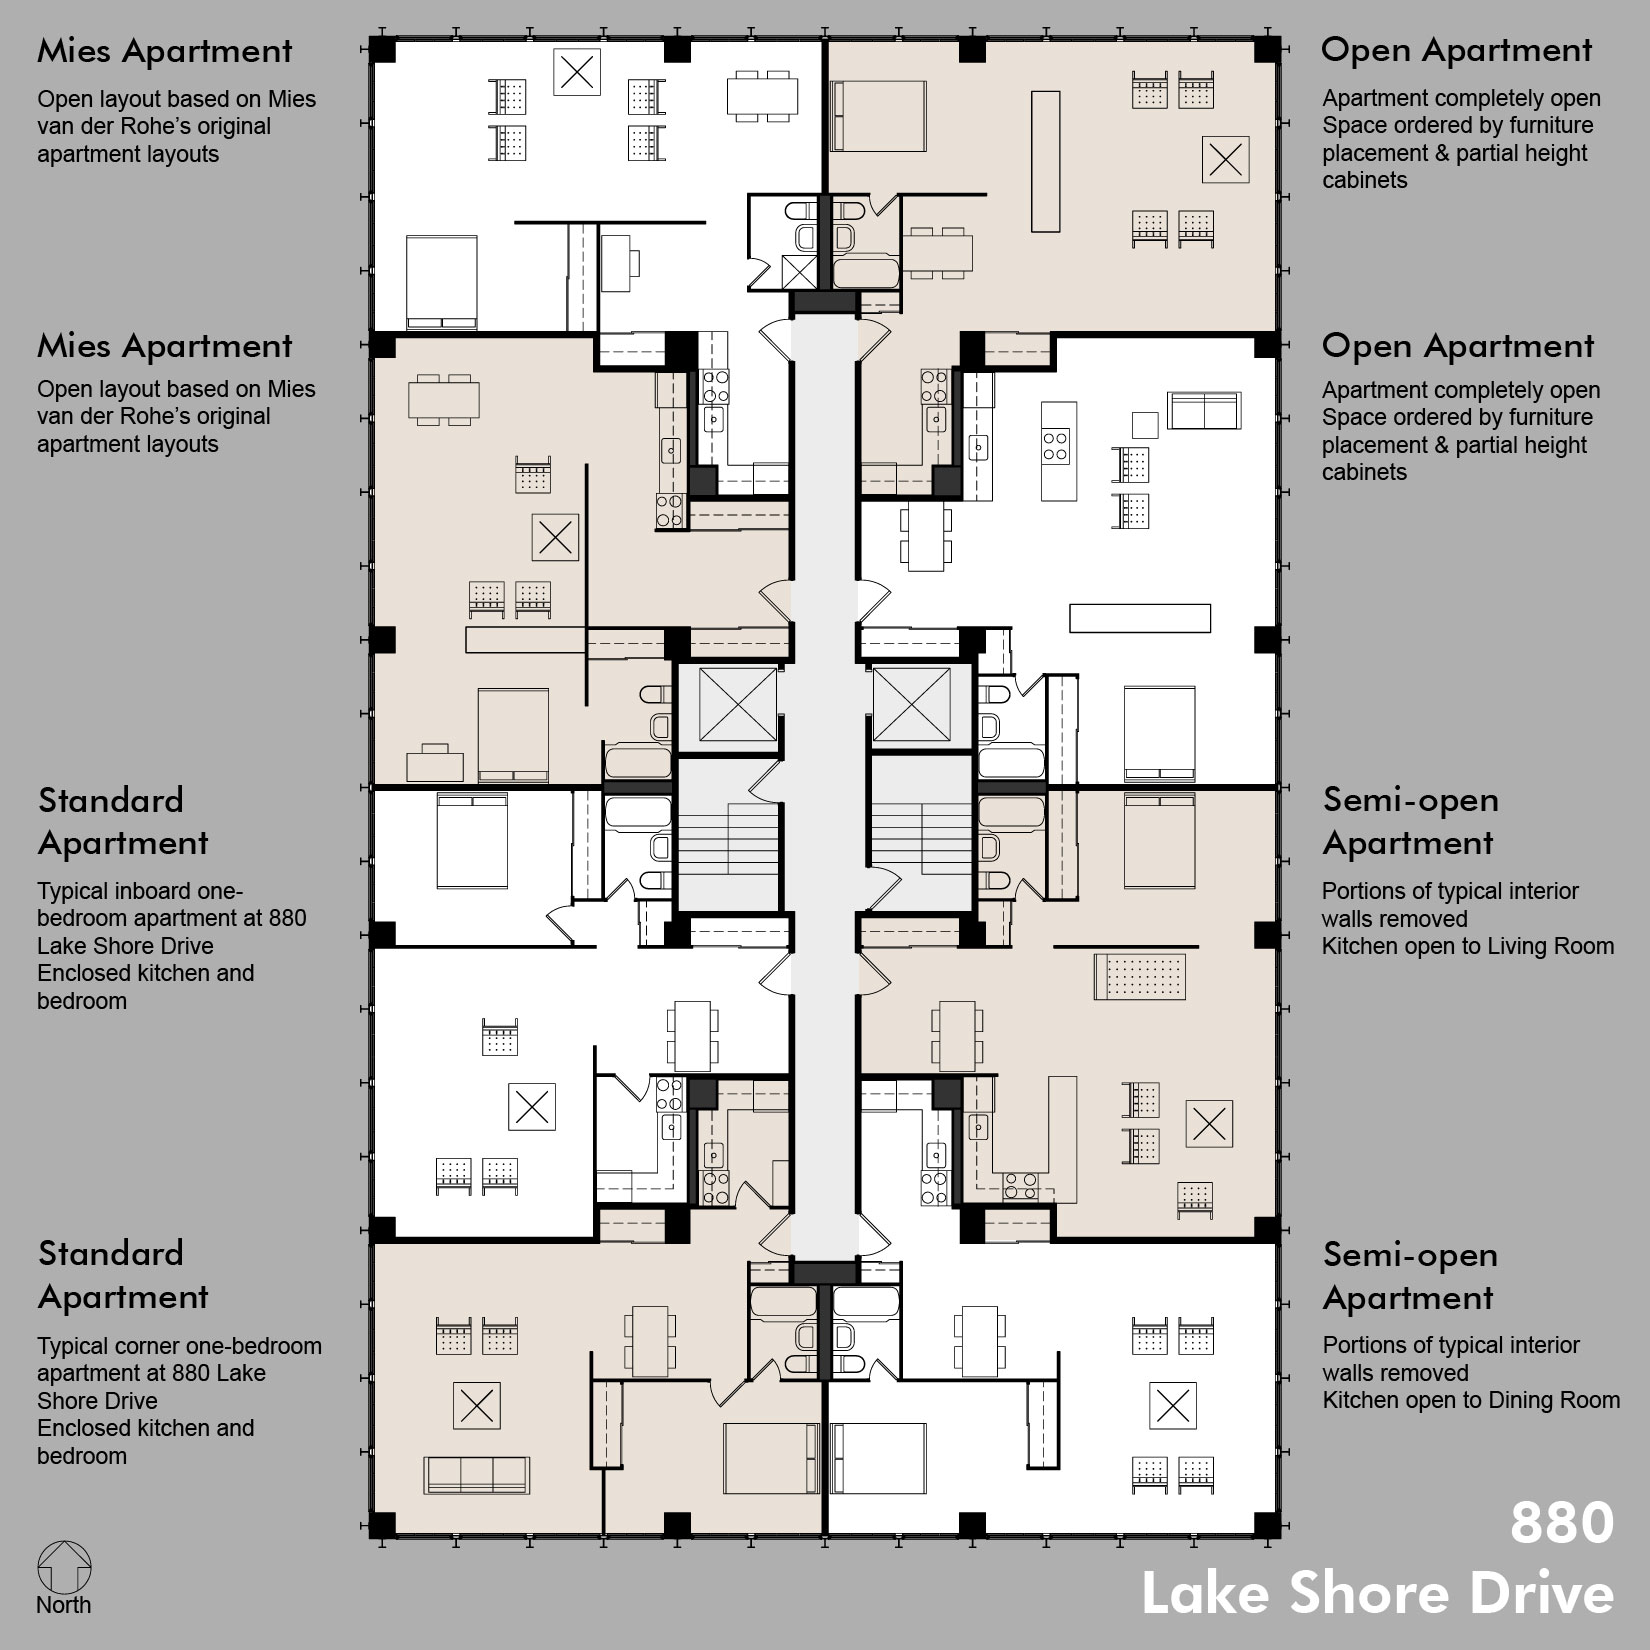 880 floor plans including standard apt Apartment building construction plans